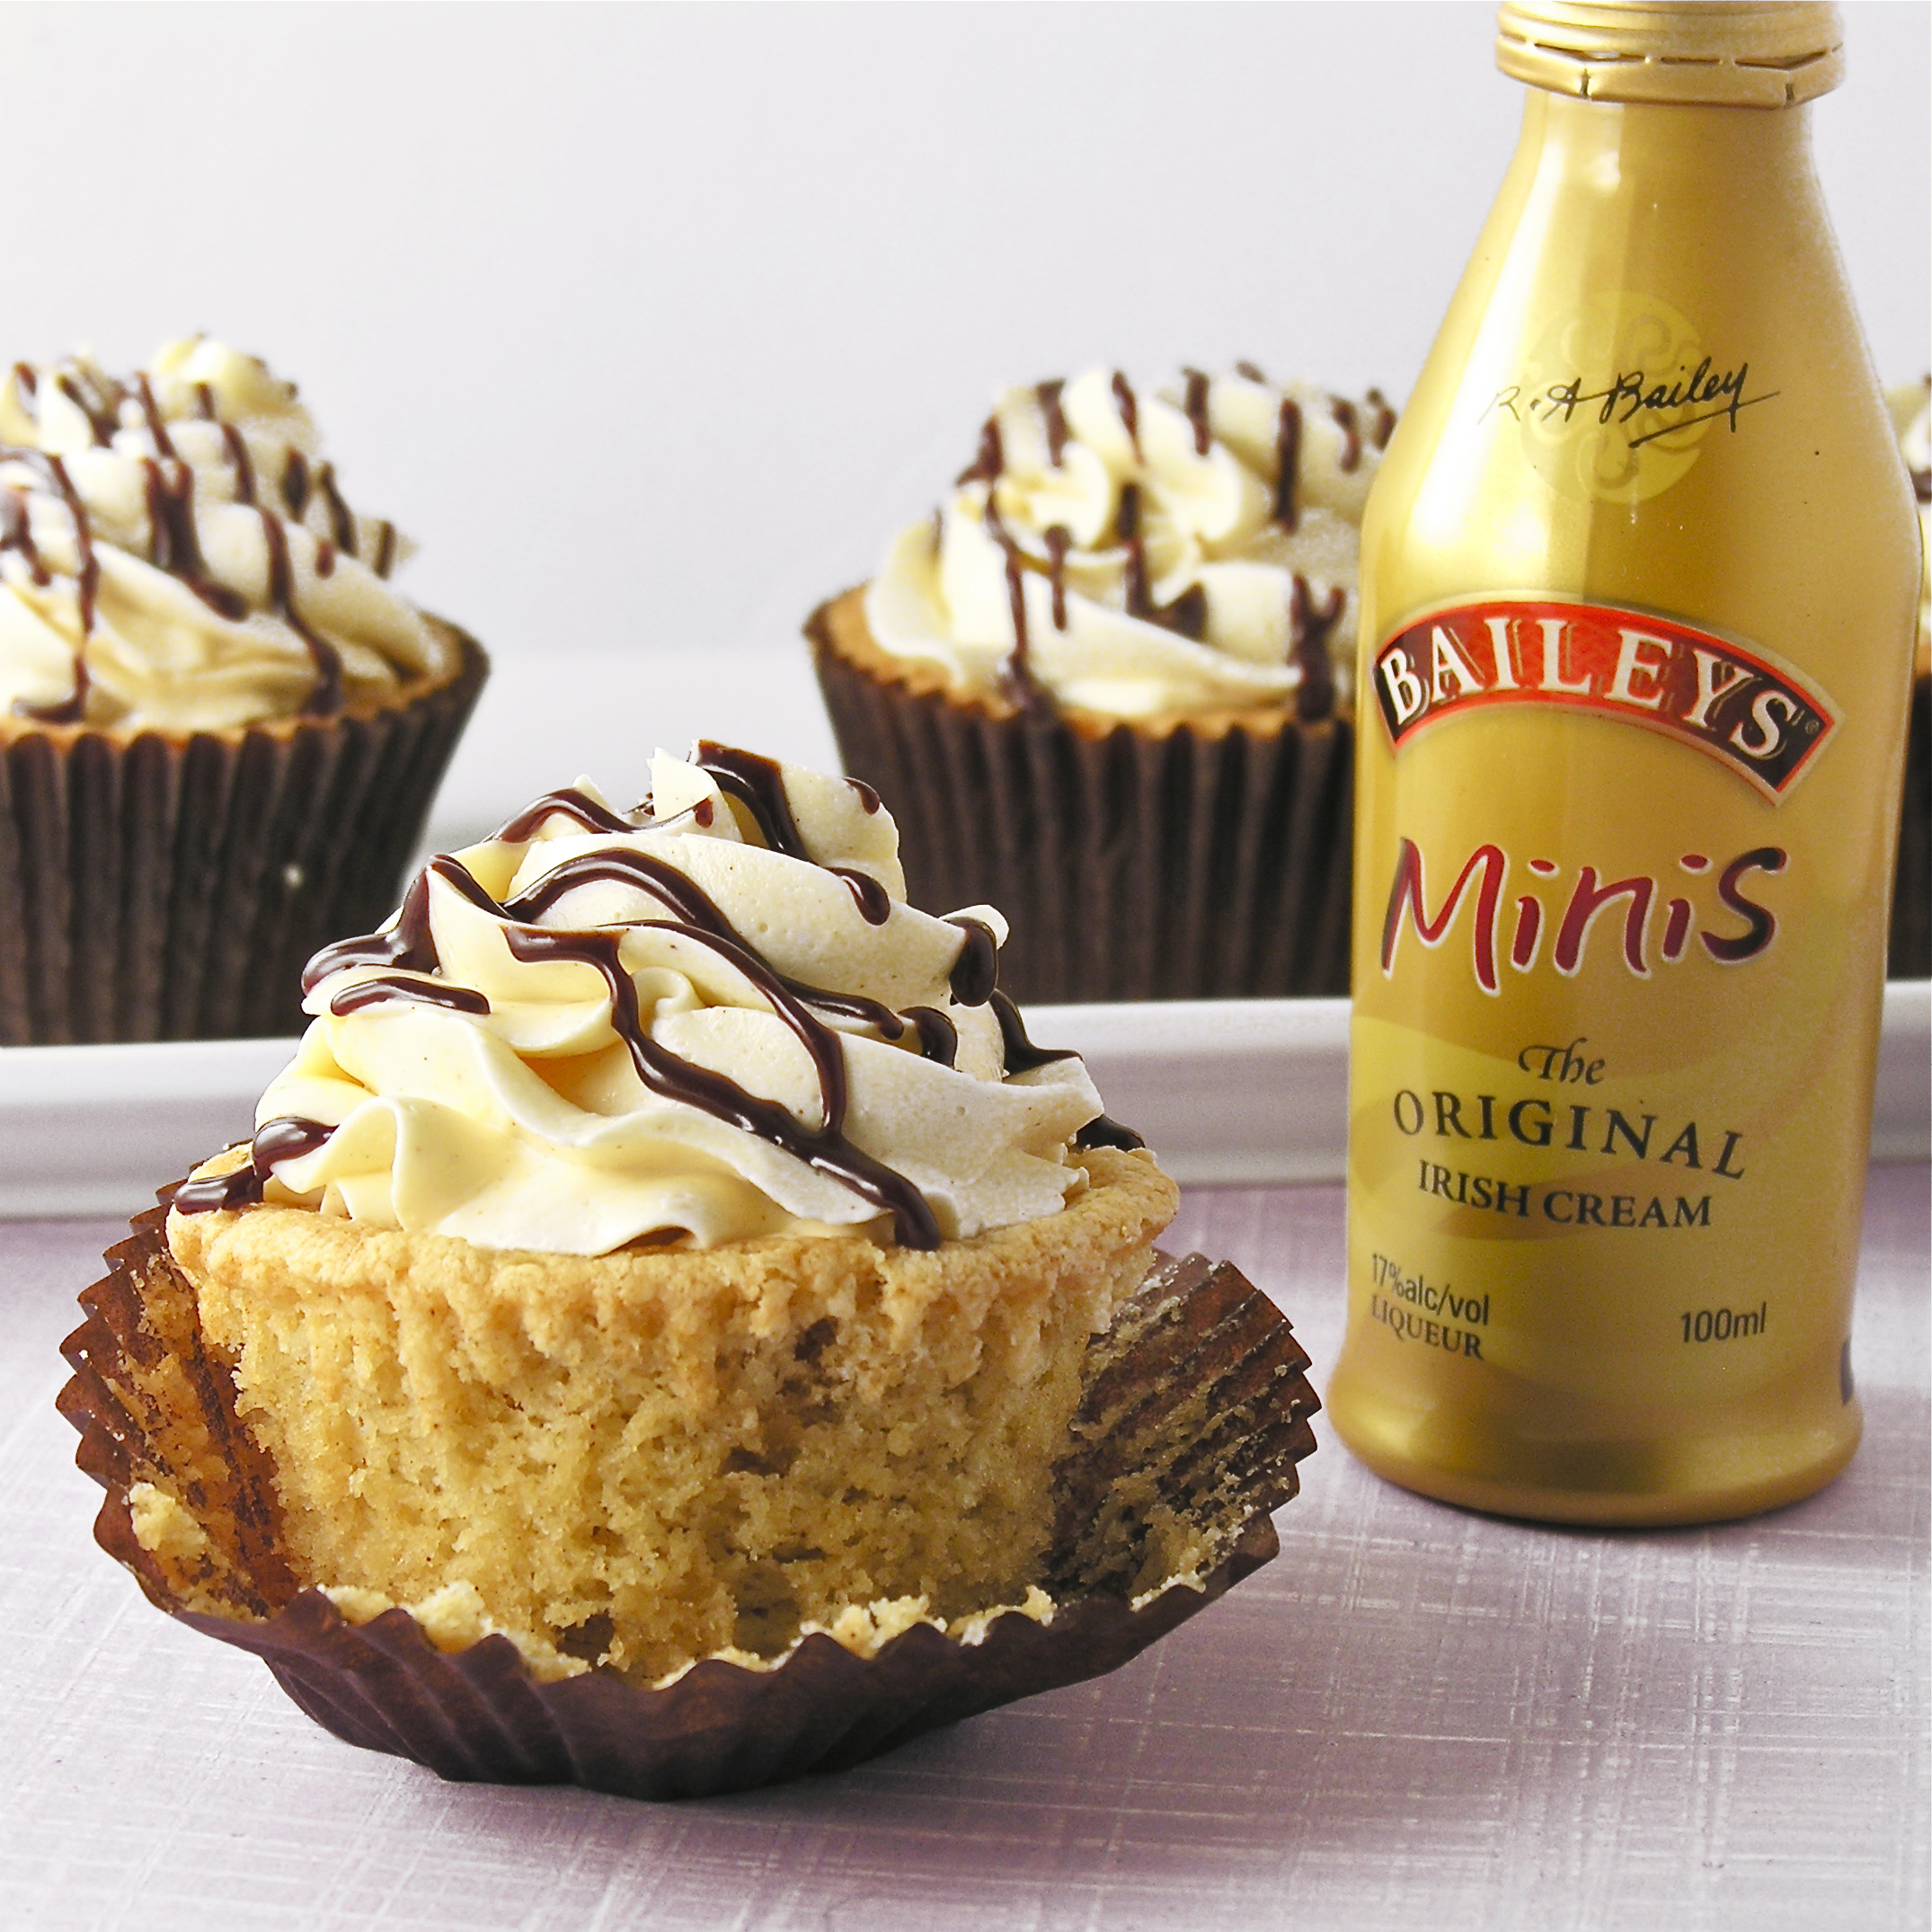 Baileys Irish Cream Cupcakes | eASYbAKED